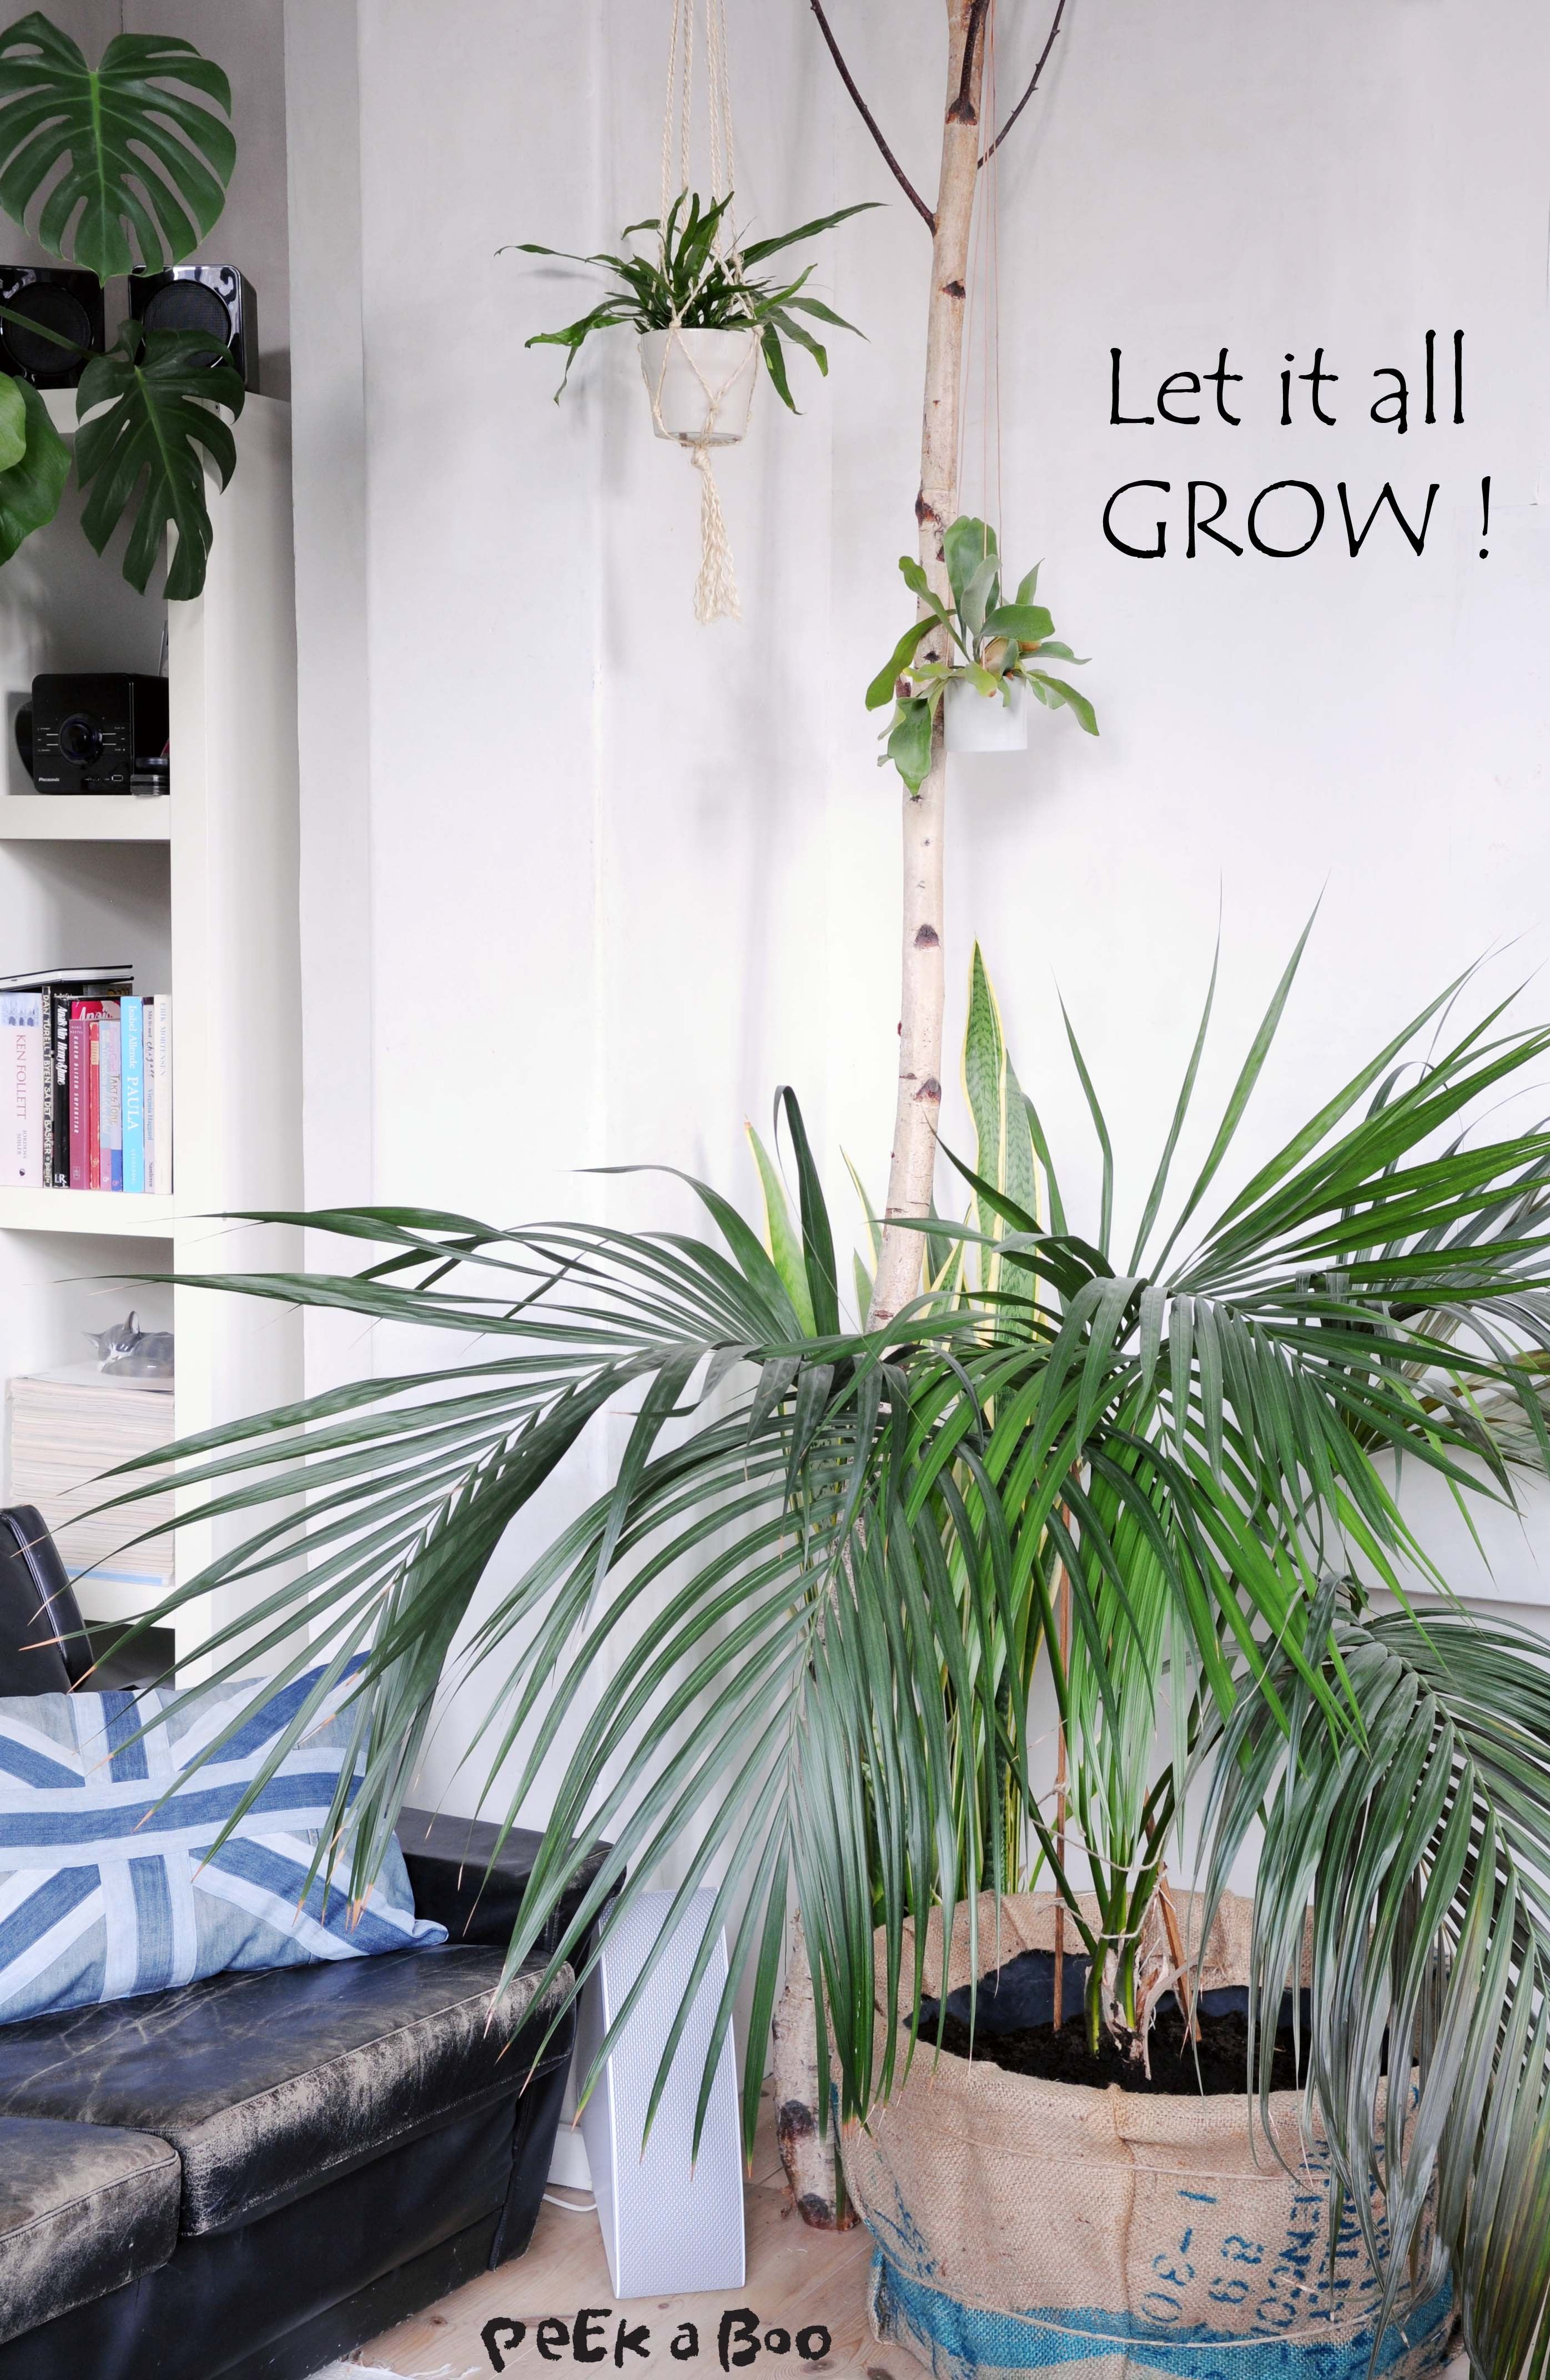 Green Living in your livingroom, makes the air in your room cleaner, and living with plants makes you happier. It's been proven, so go make your place a better and greener home.